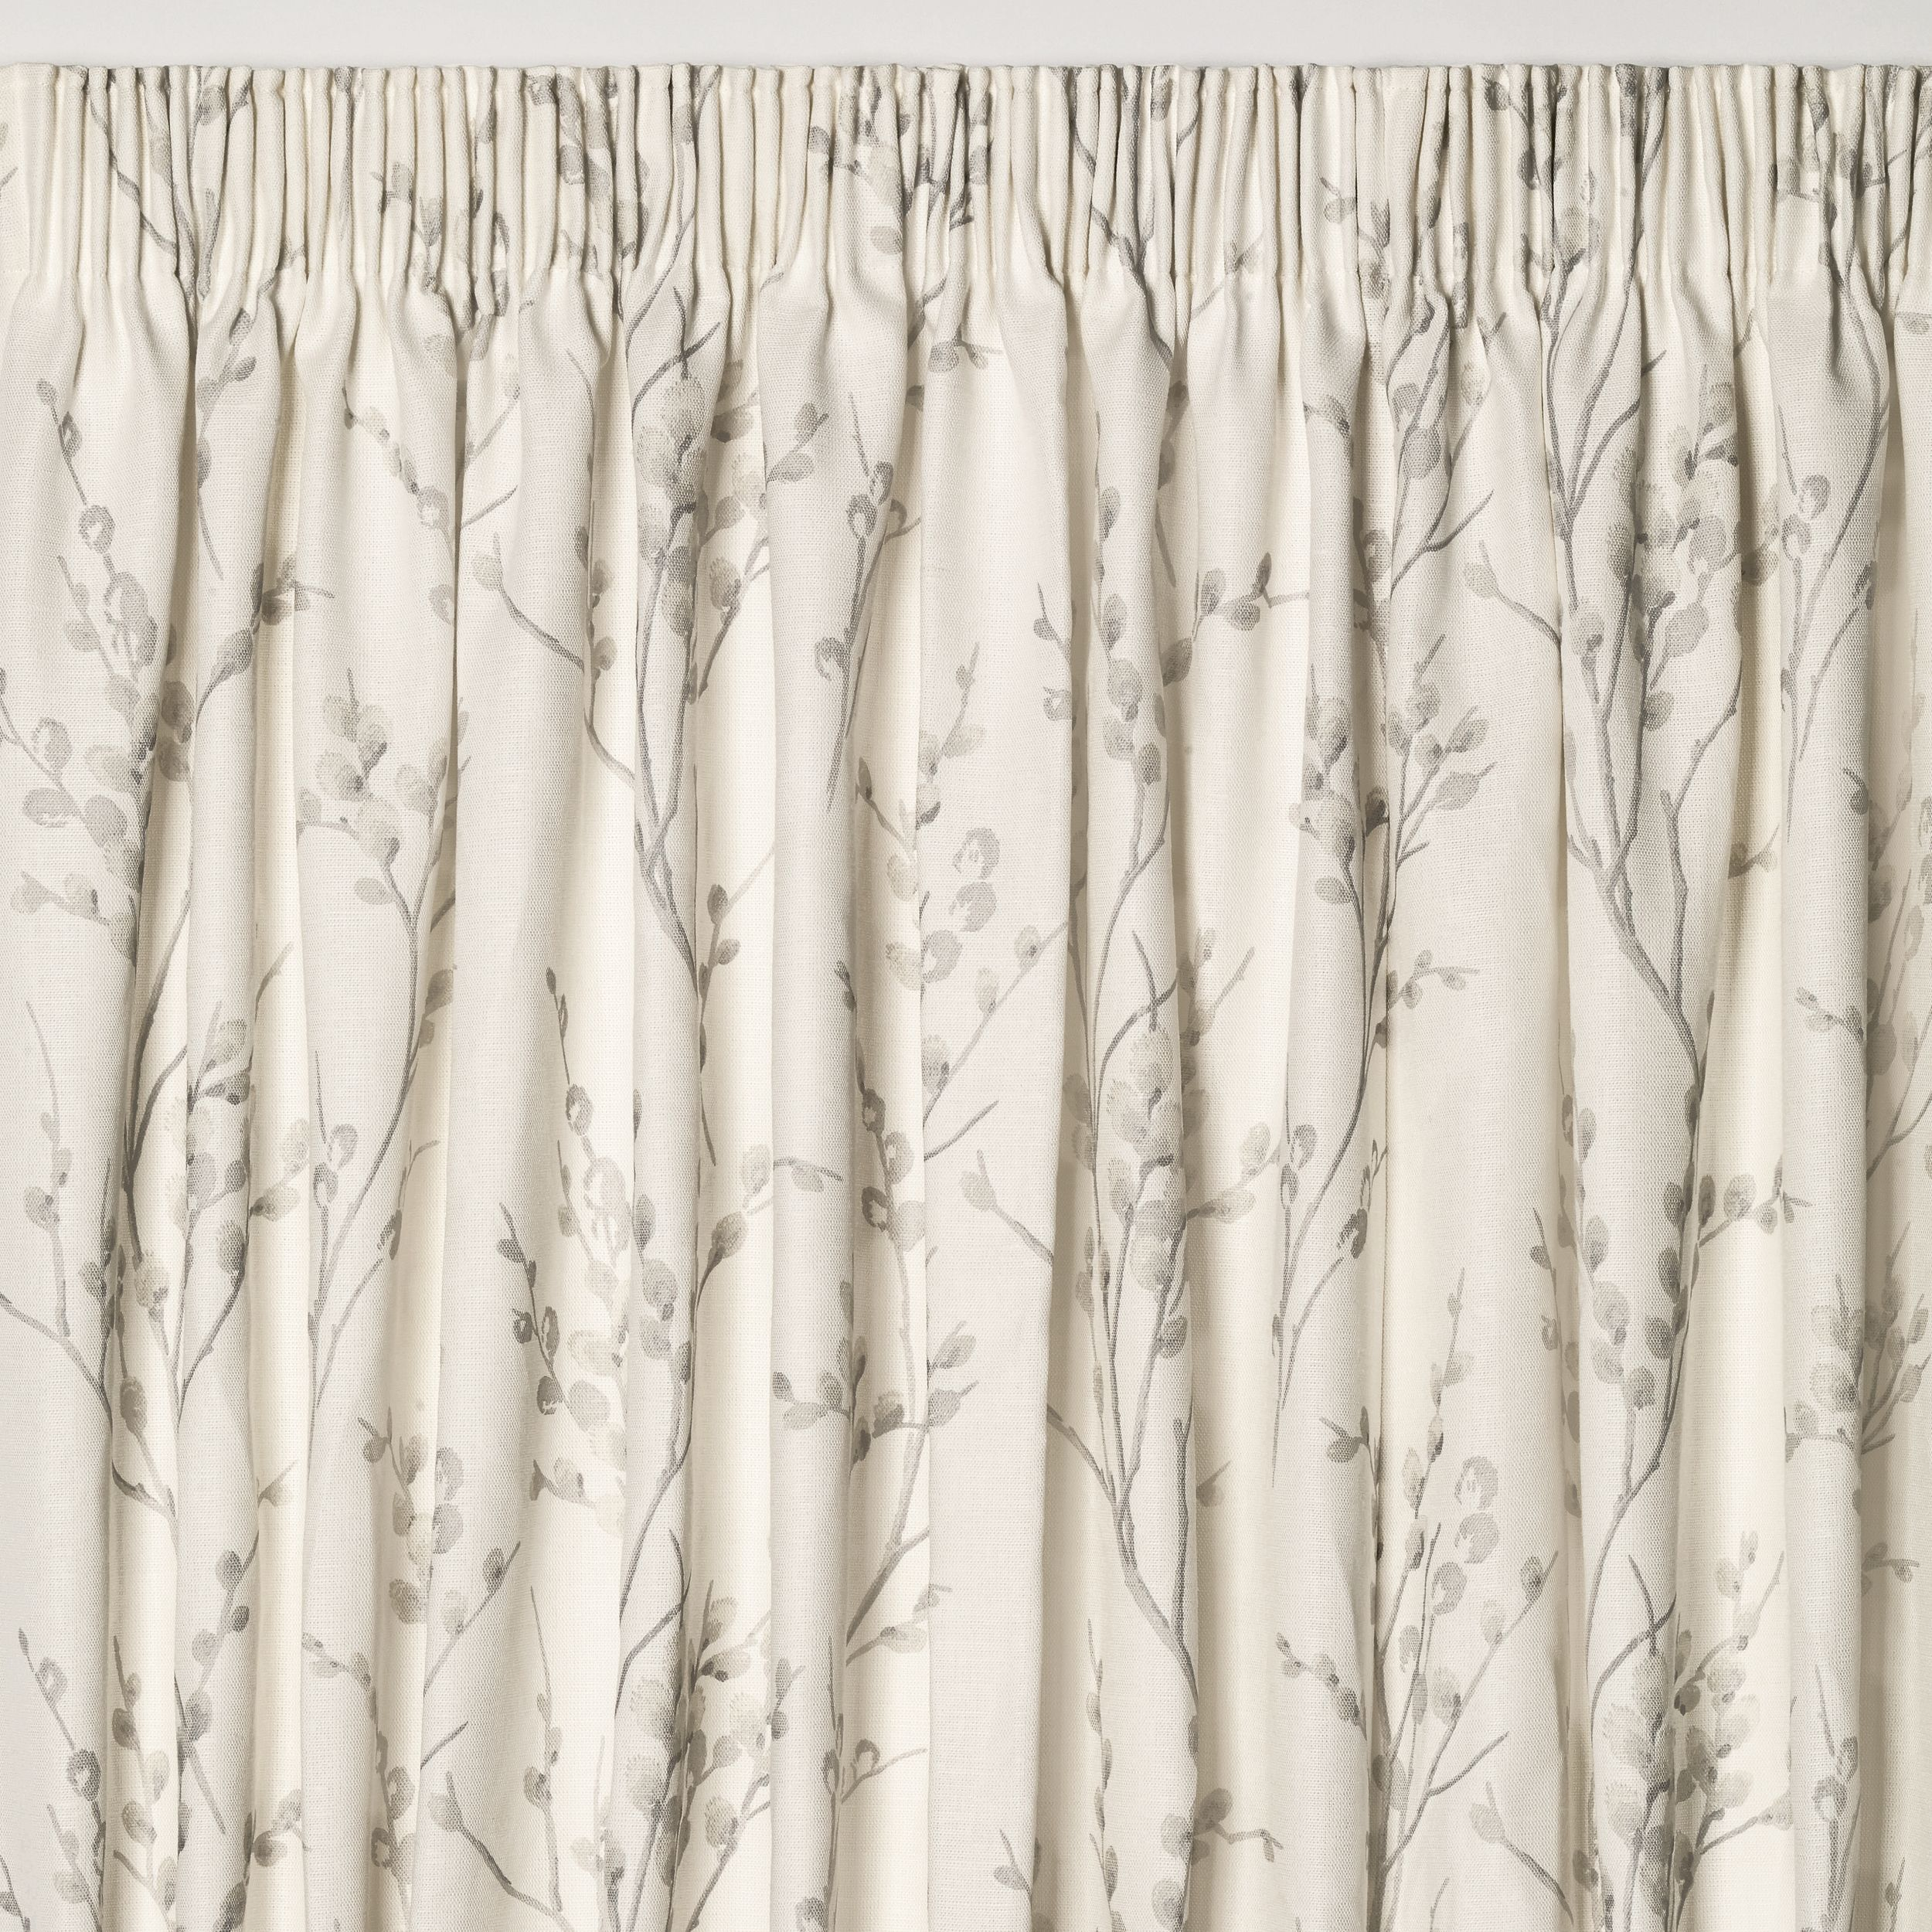 Pussy Willow Off White/Dove Grey Floral Pencil Pleat Ready